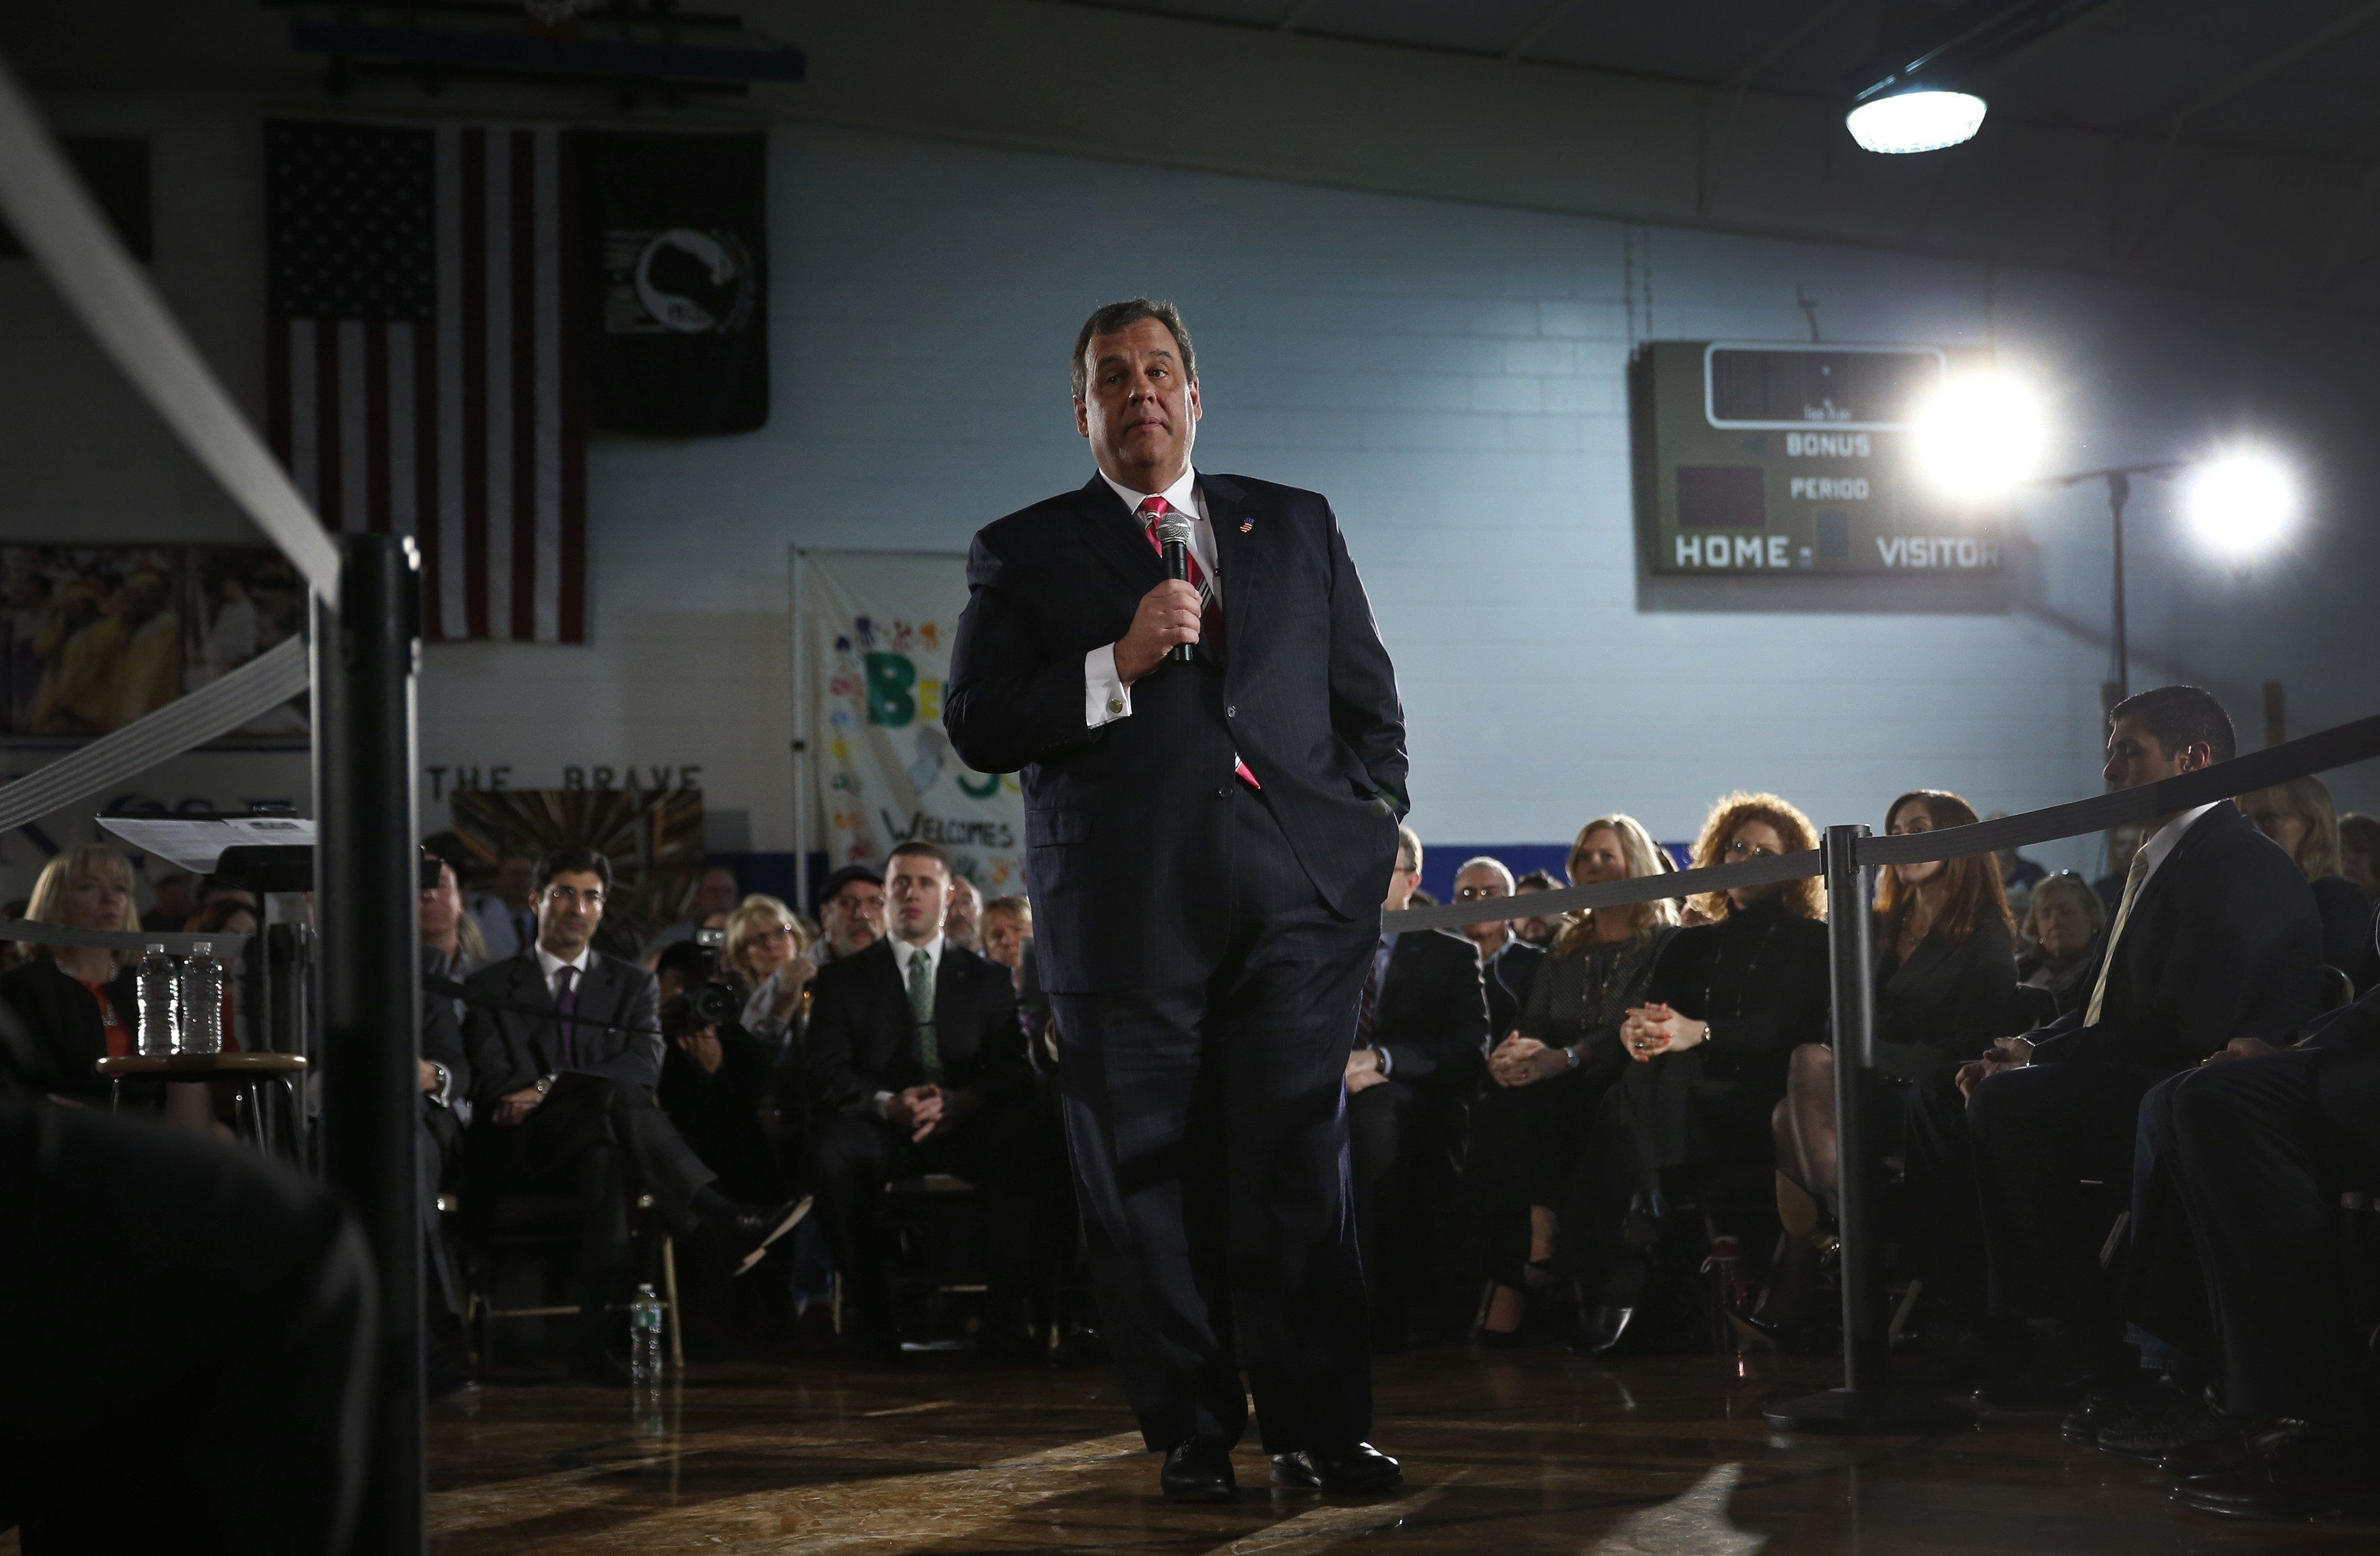 New Jersey Governor Chris Christie speaks to local residents of Belmar, New Jersey, March 25, 2014.